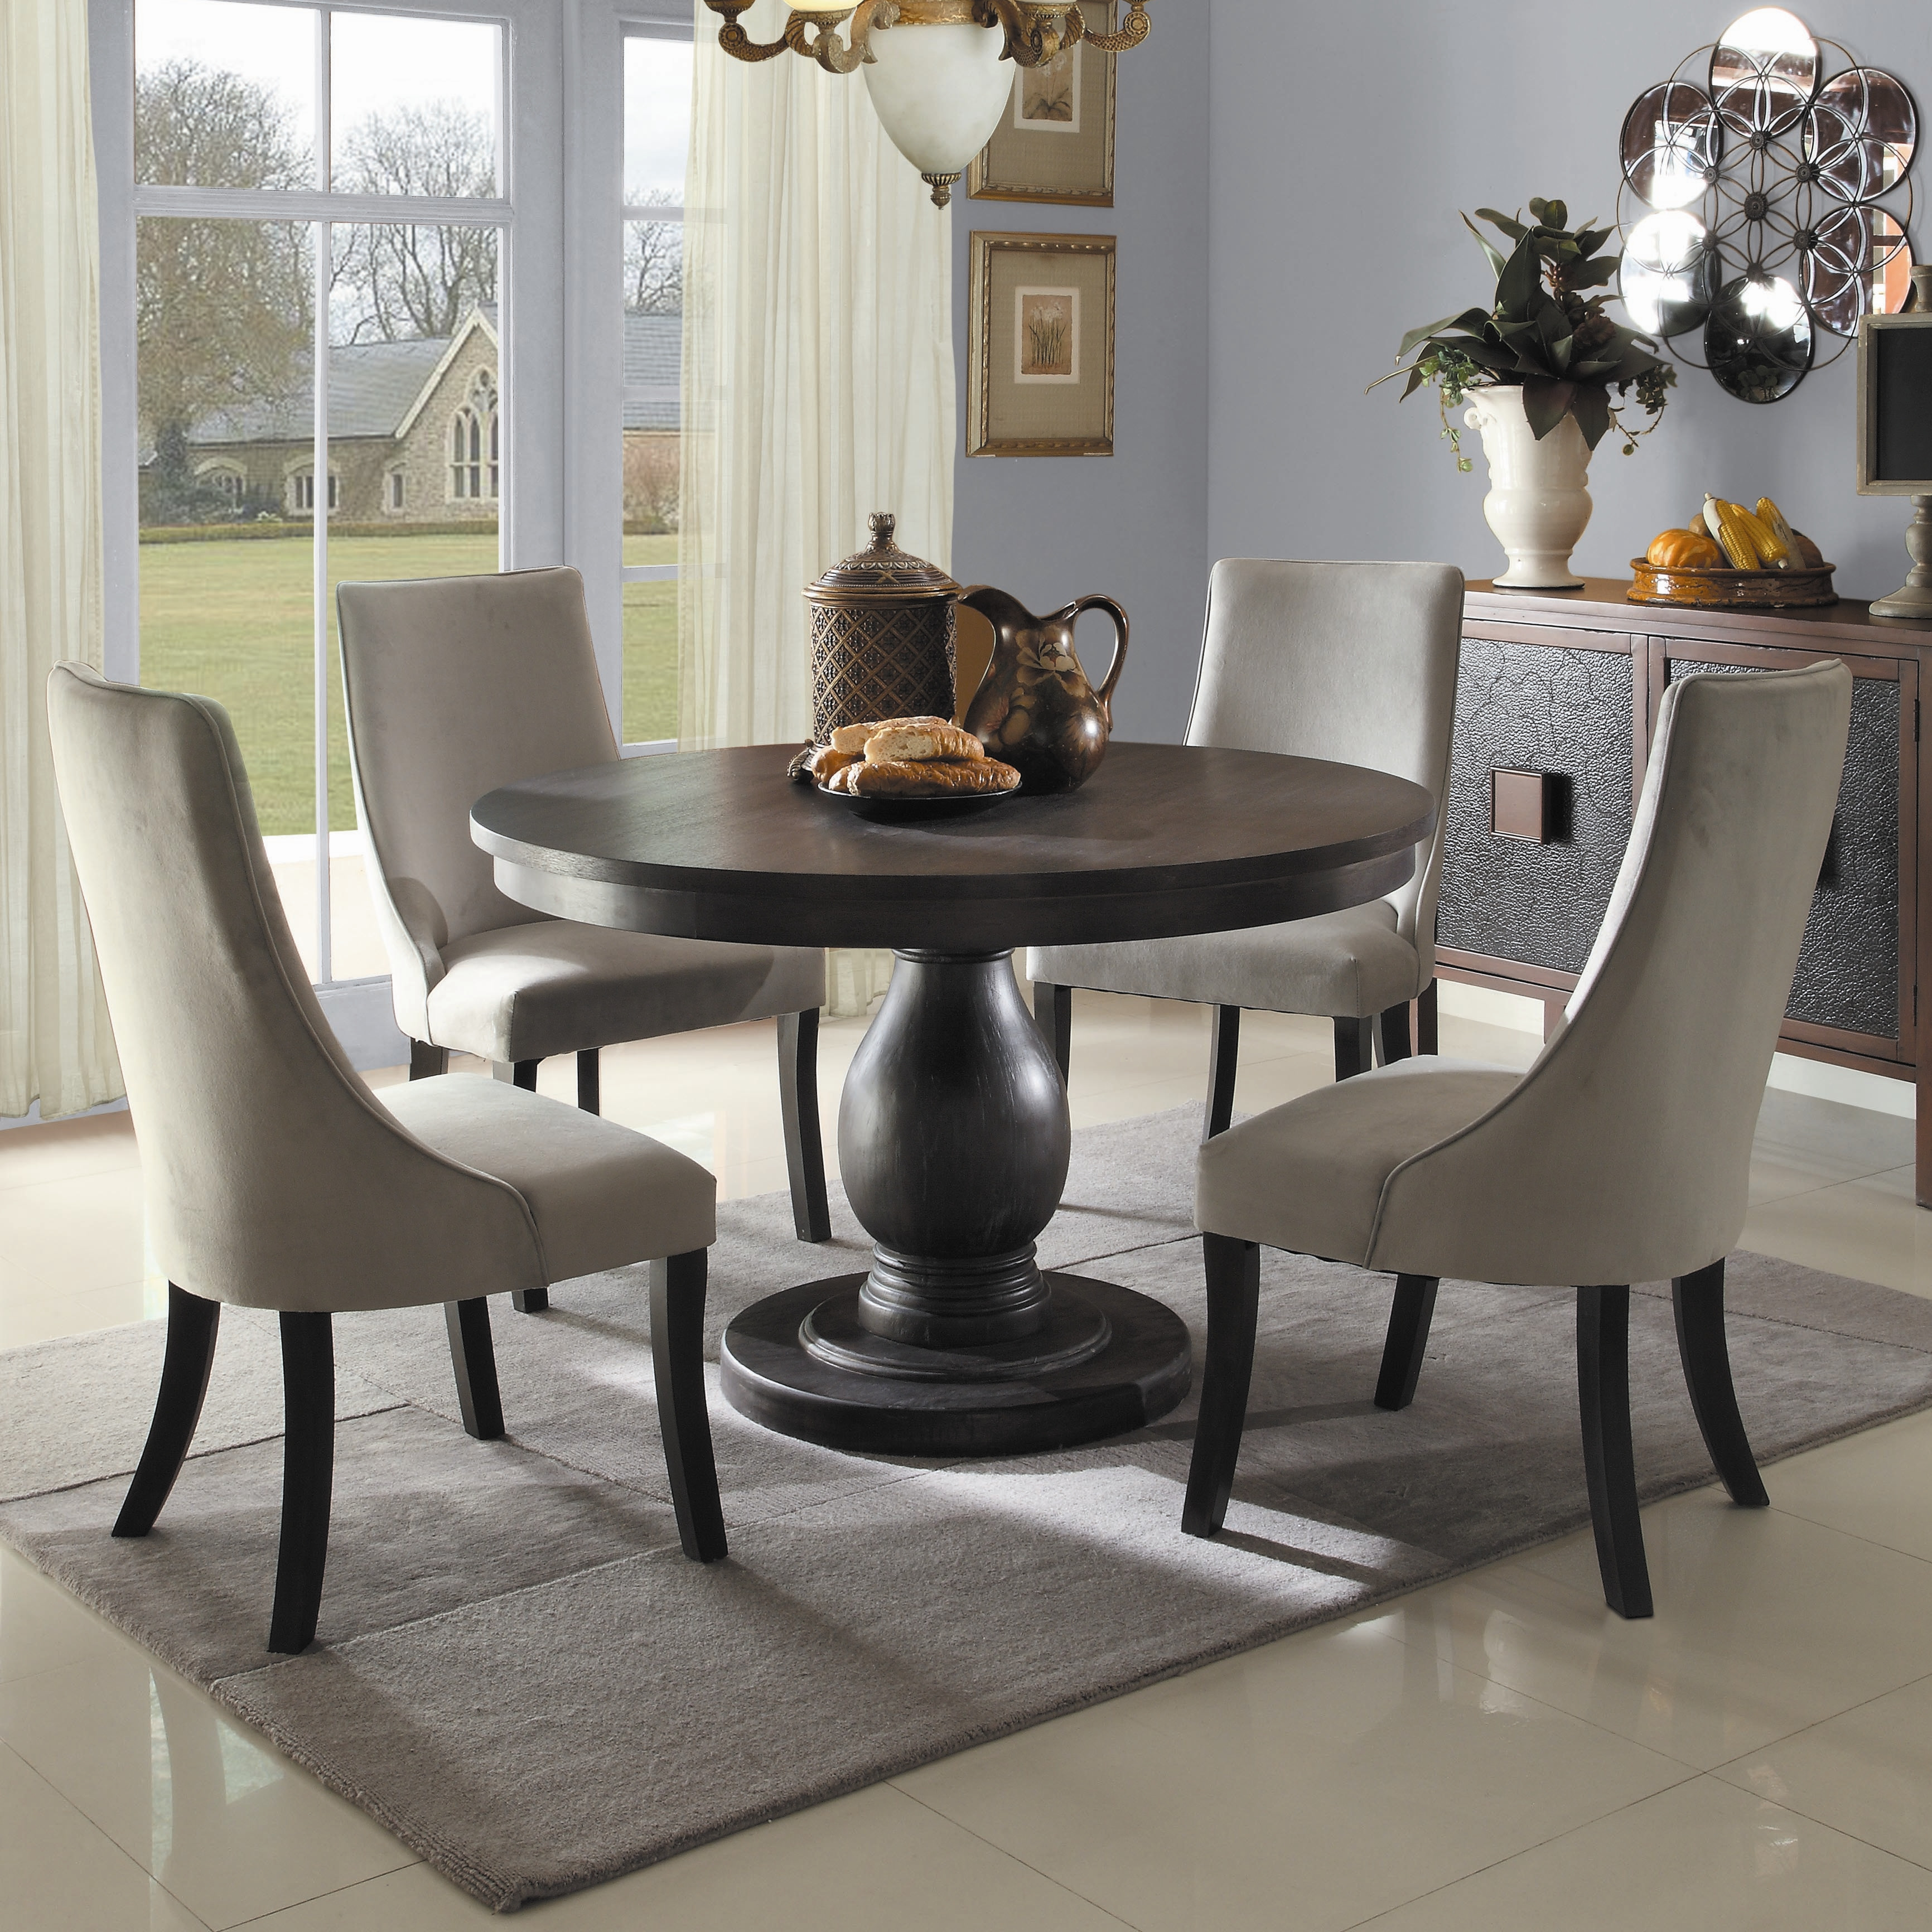 Turn Everything Off And Take A Seat At These Dining Tables - Wayfair black dining table